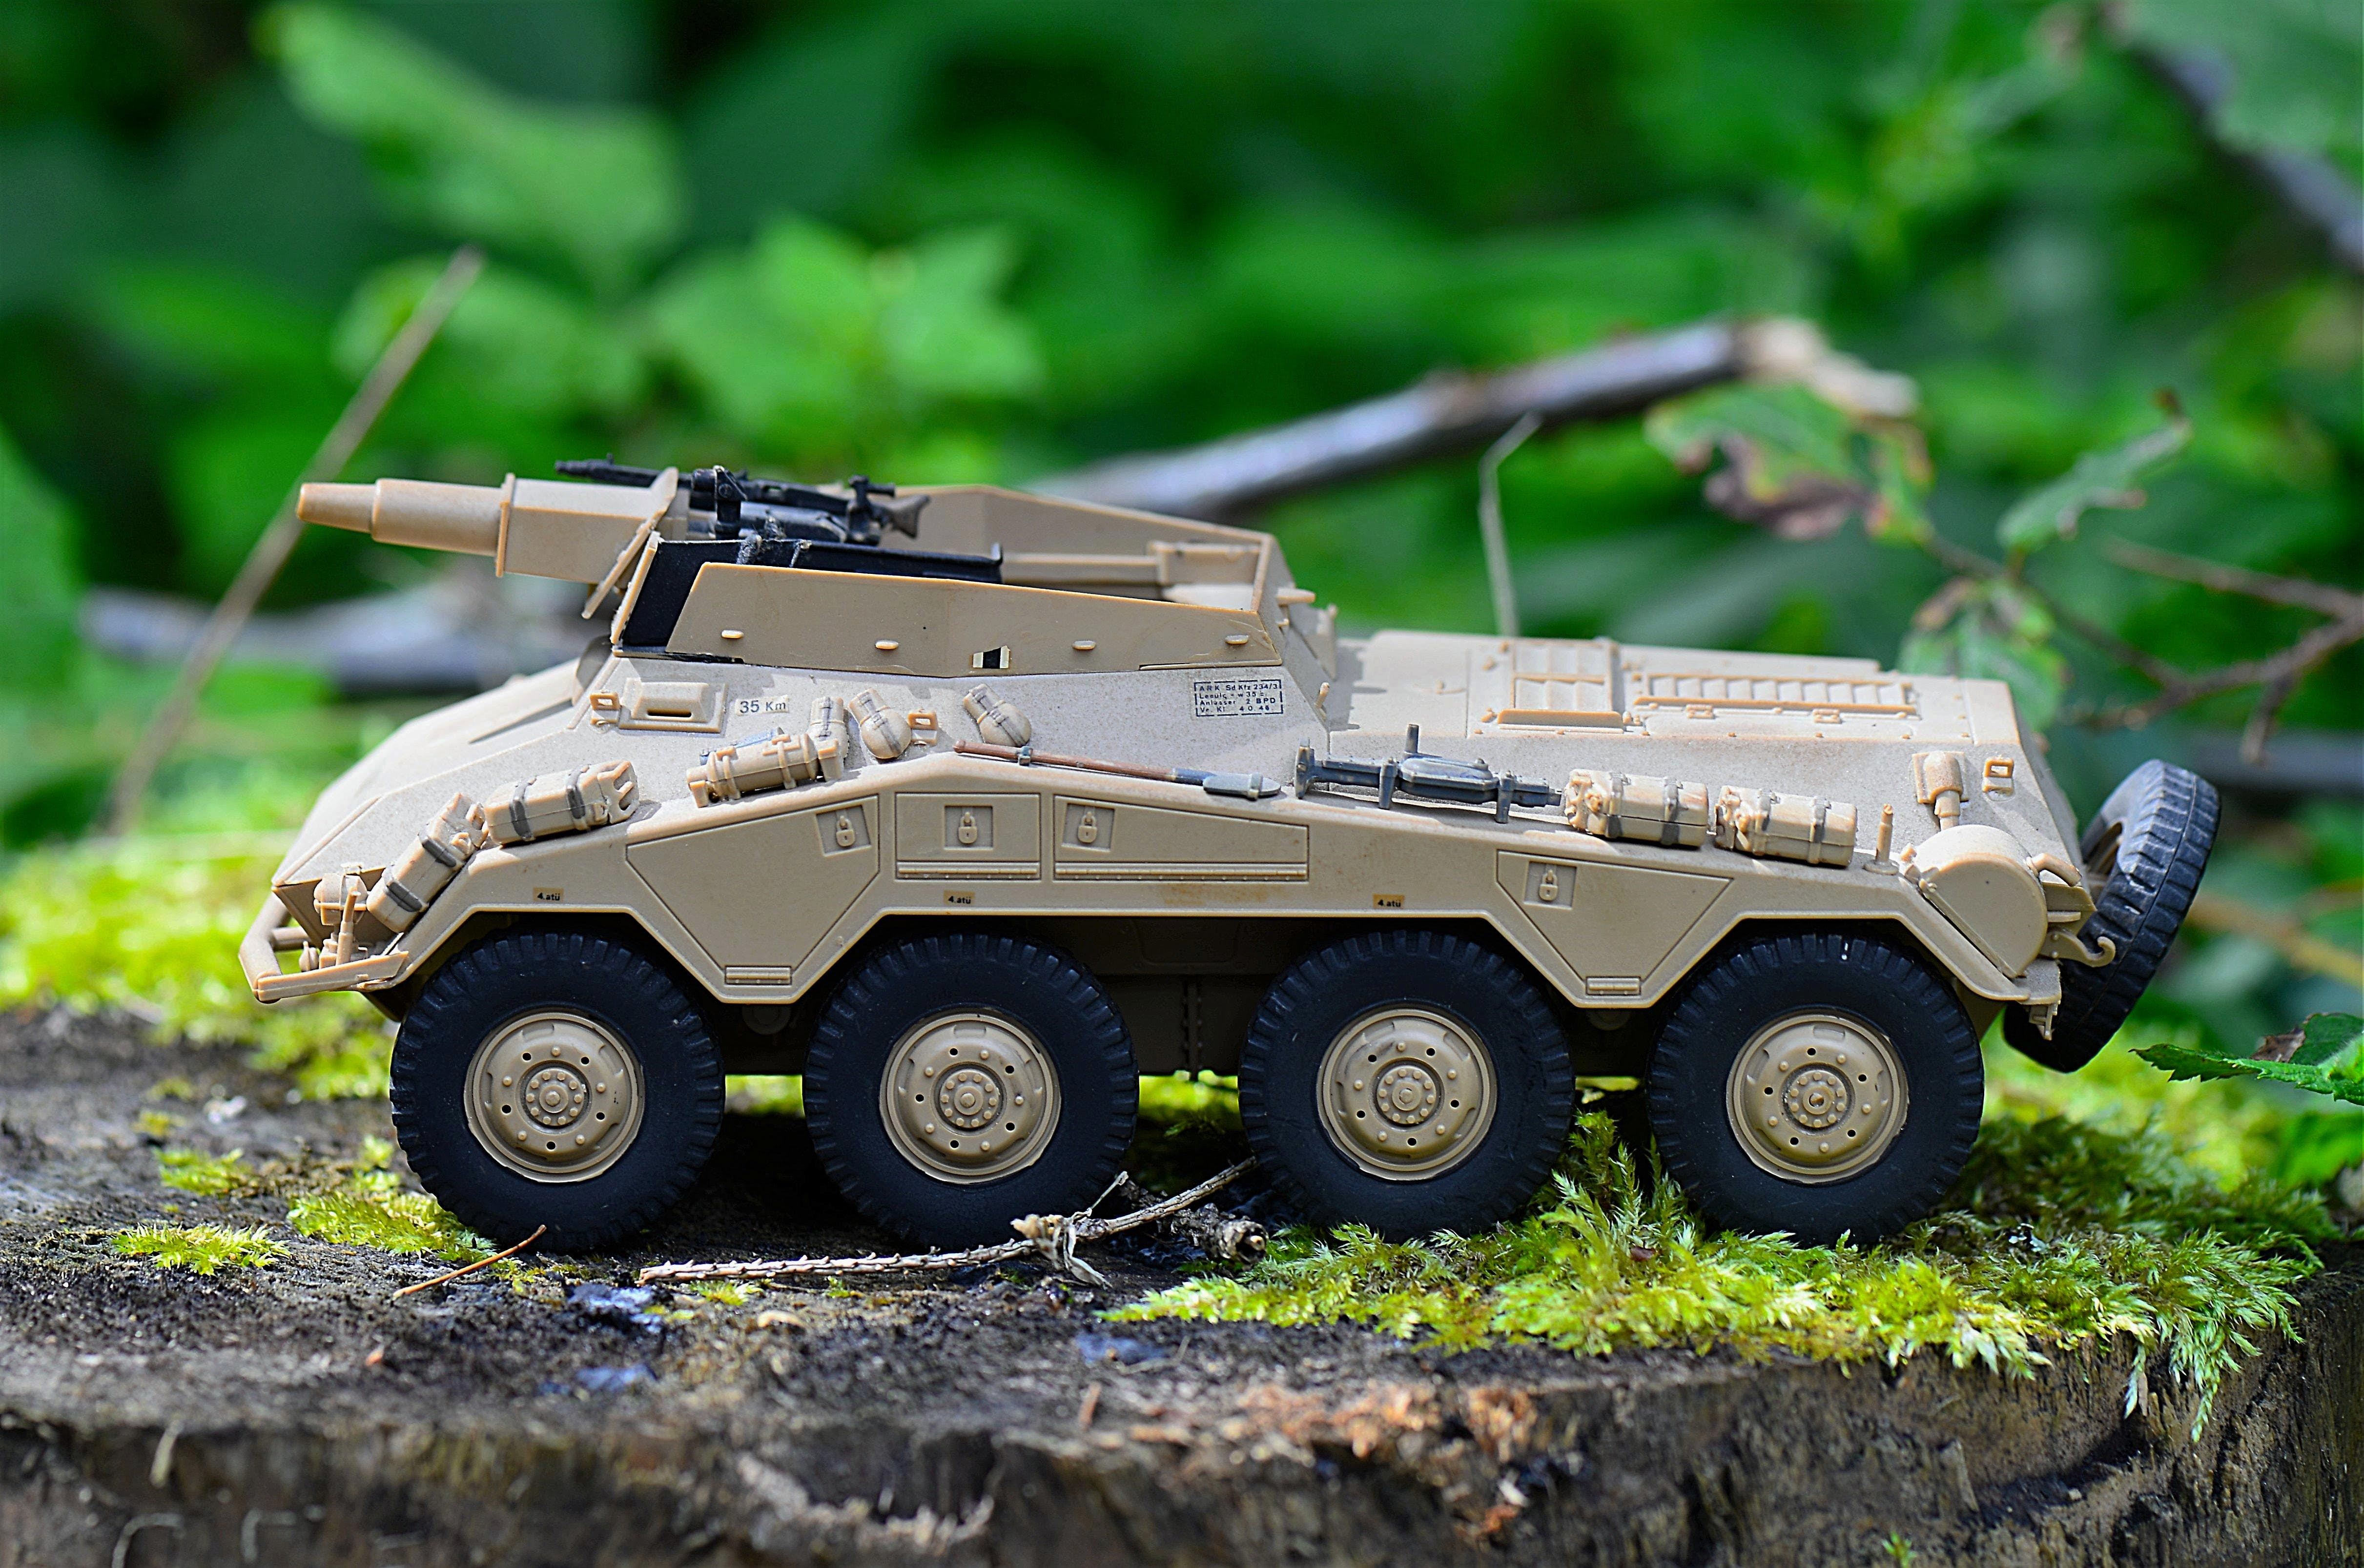 Tan Military Artillery Vehicle Toy on Wood Stump